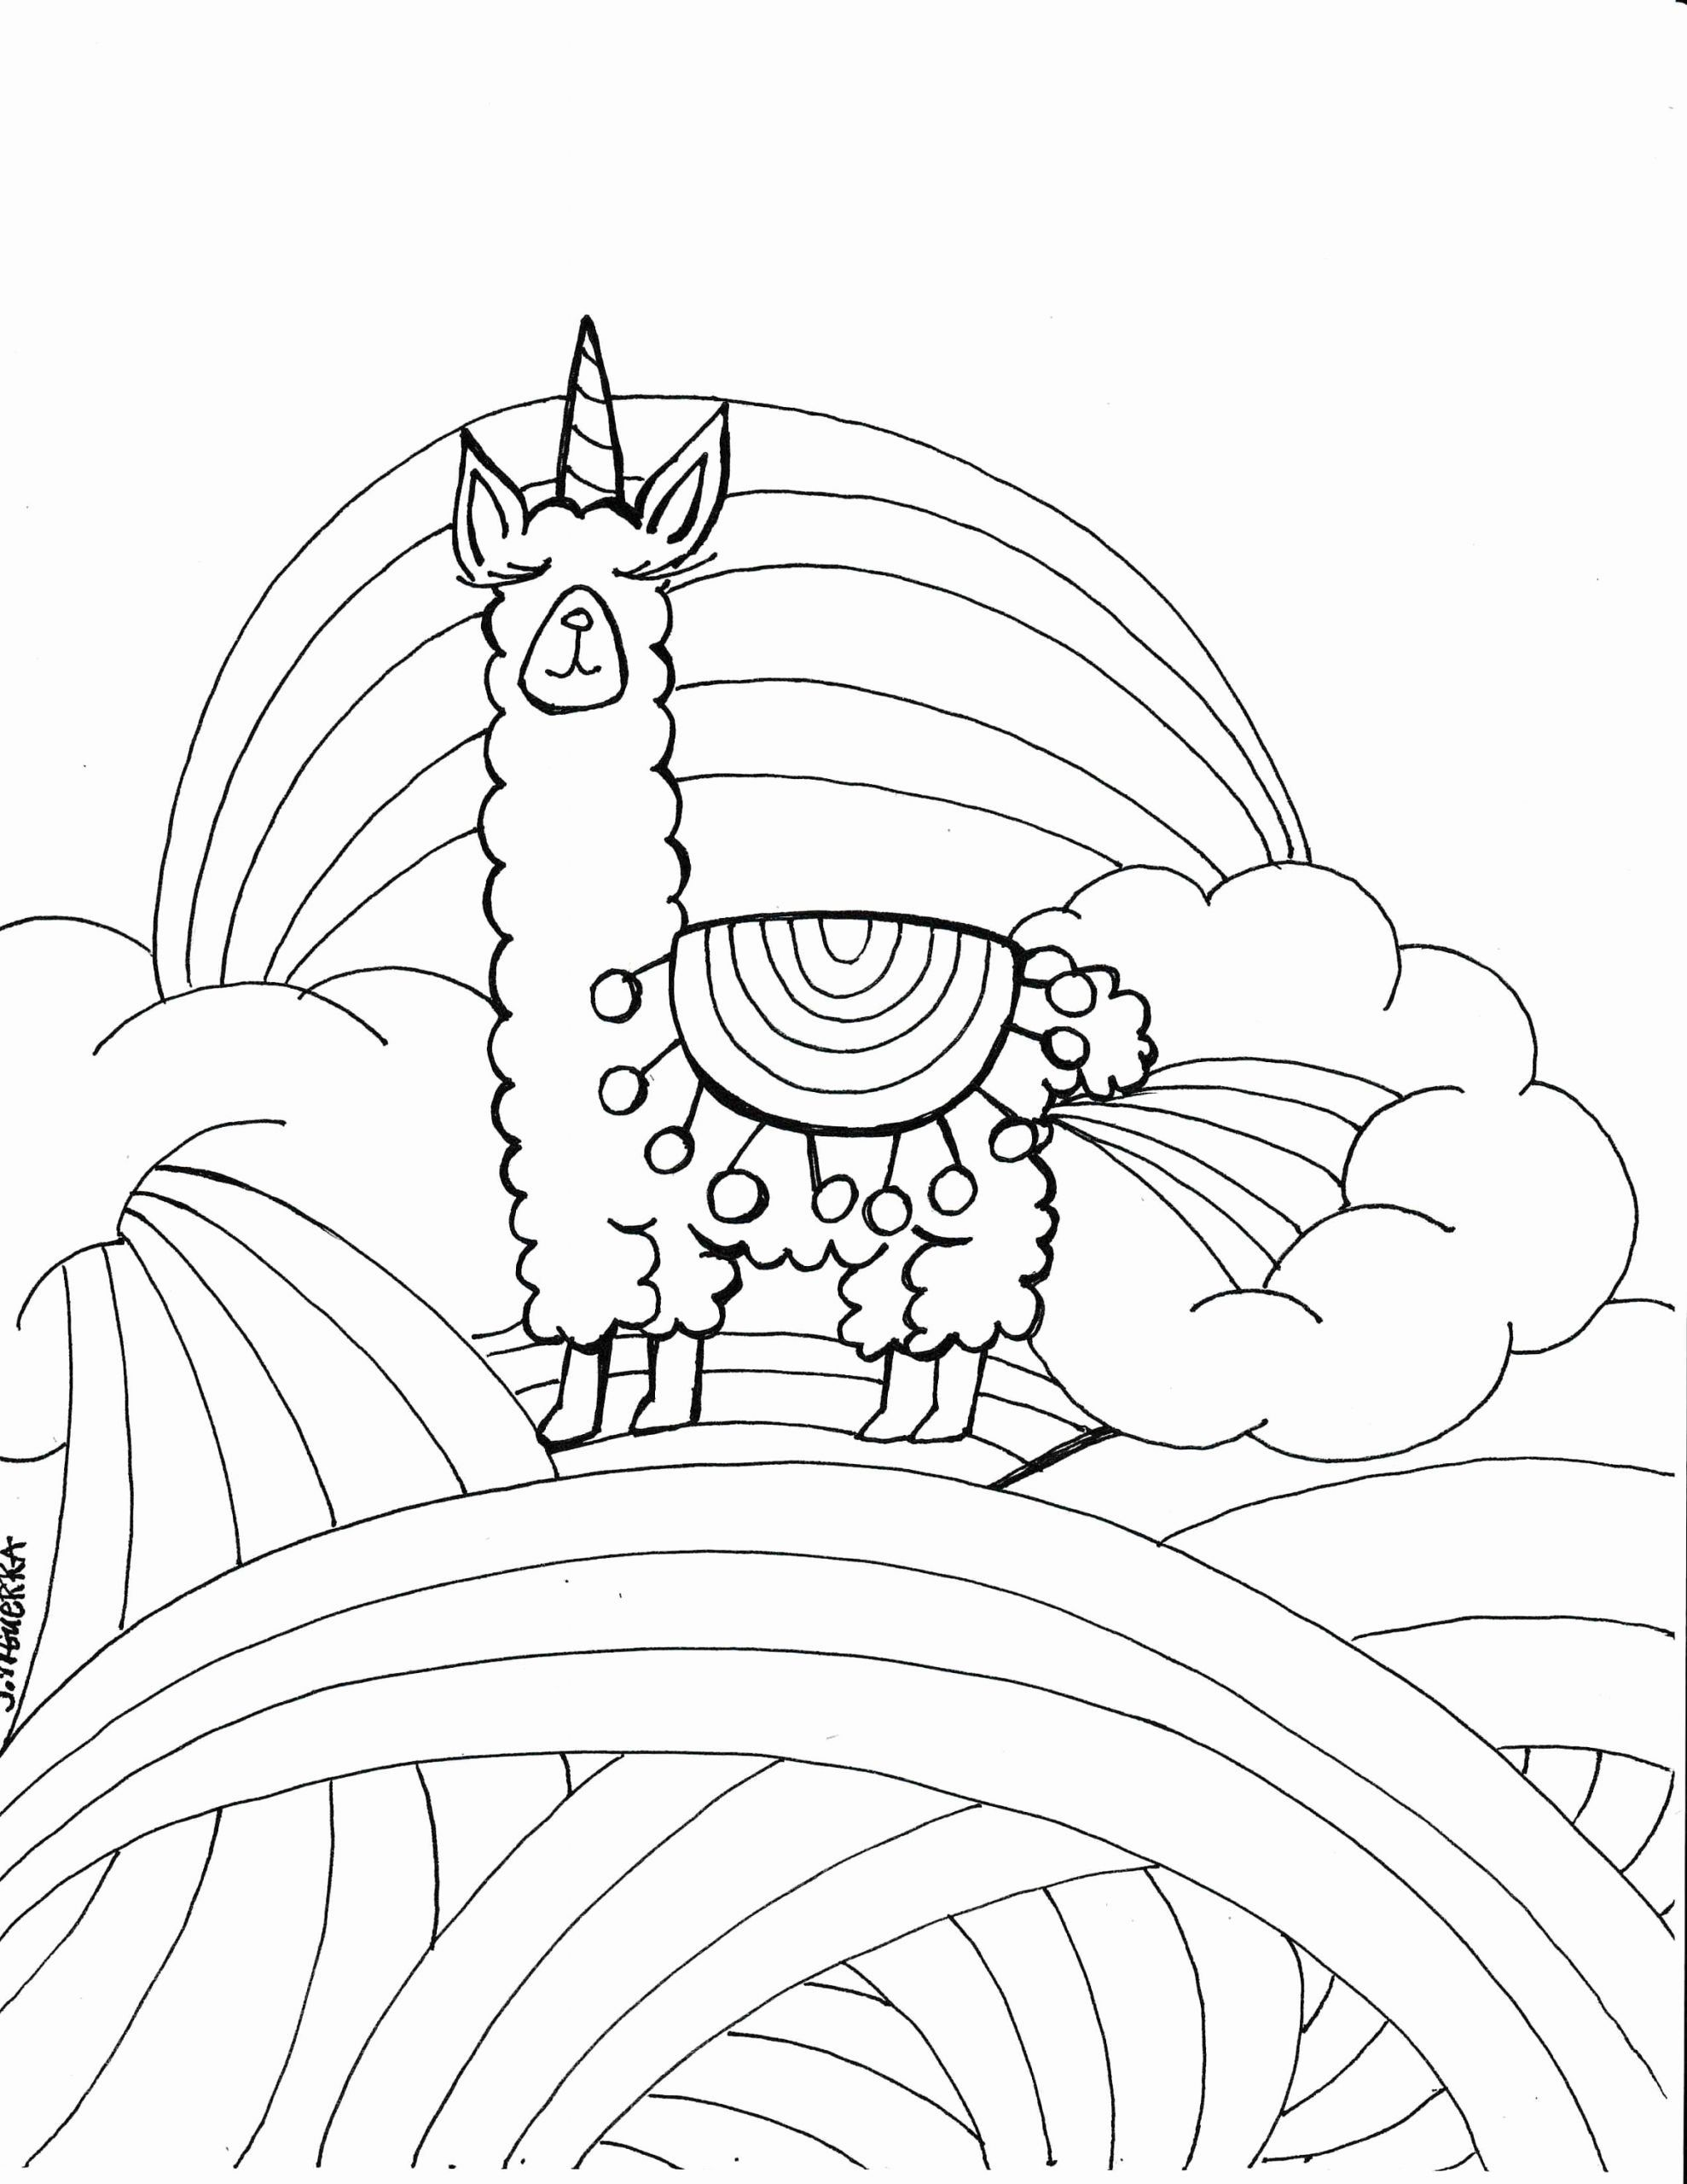 Pin On Best Cartoon Coloring Pages